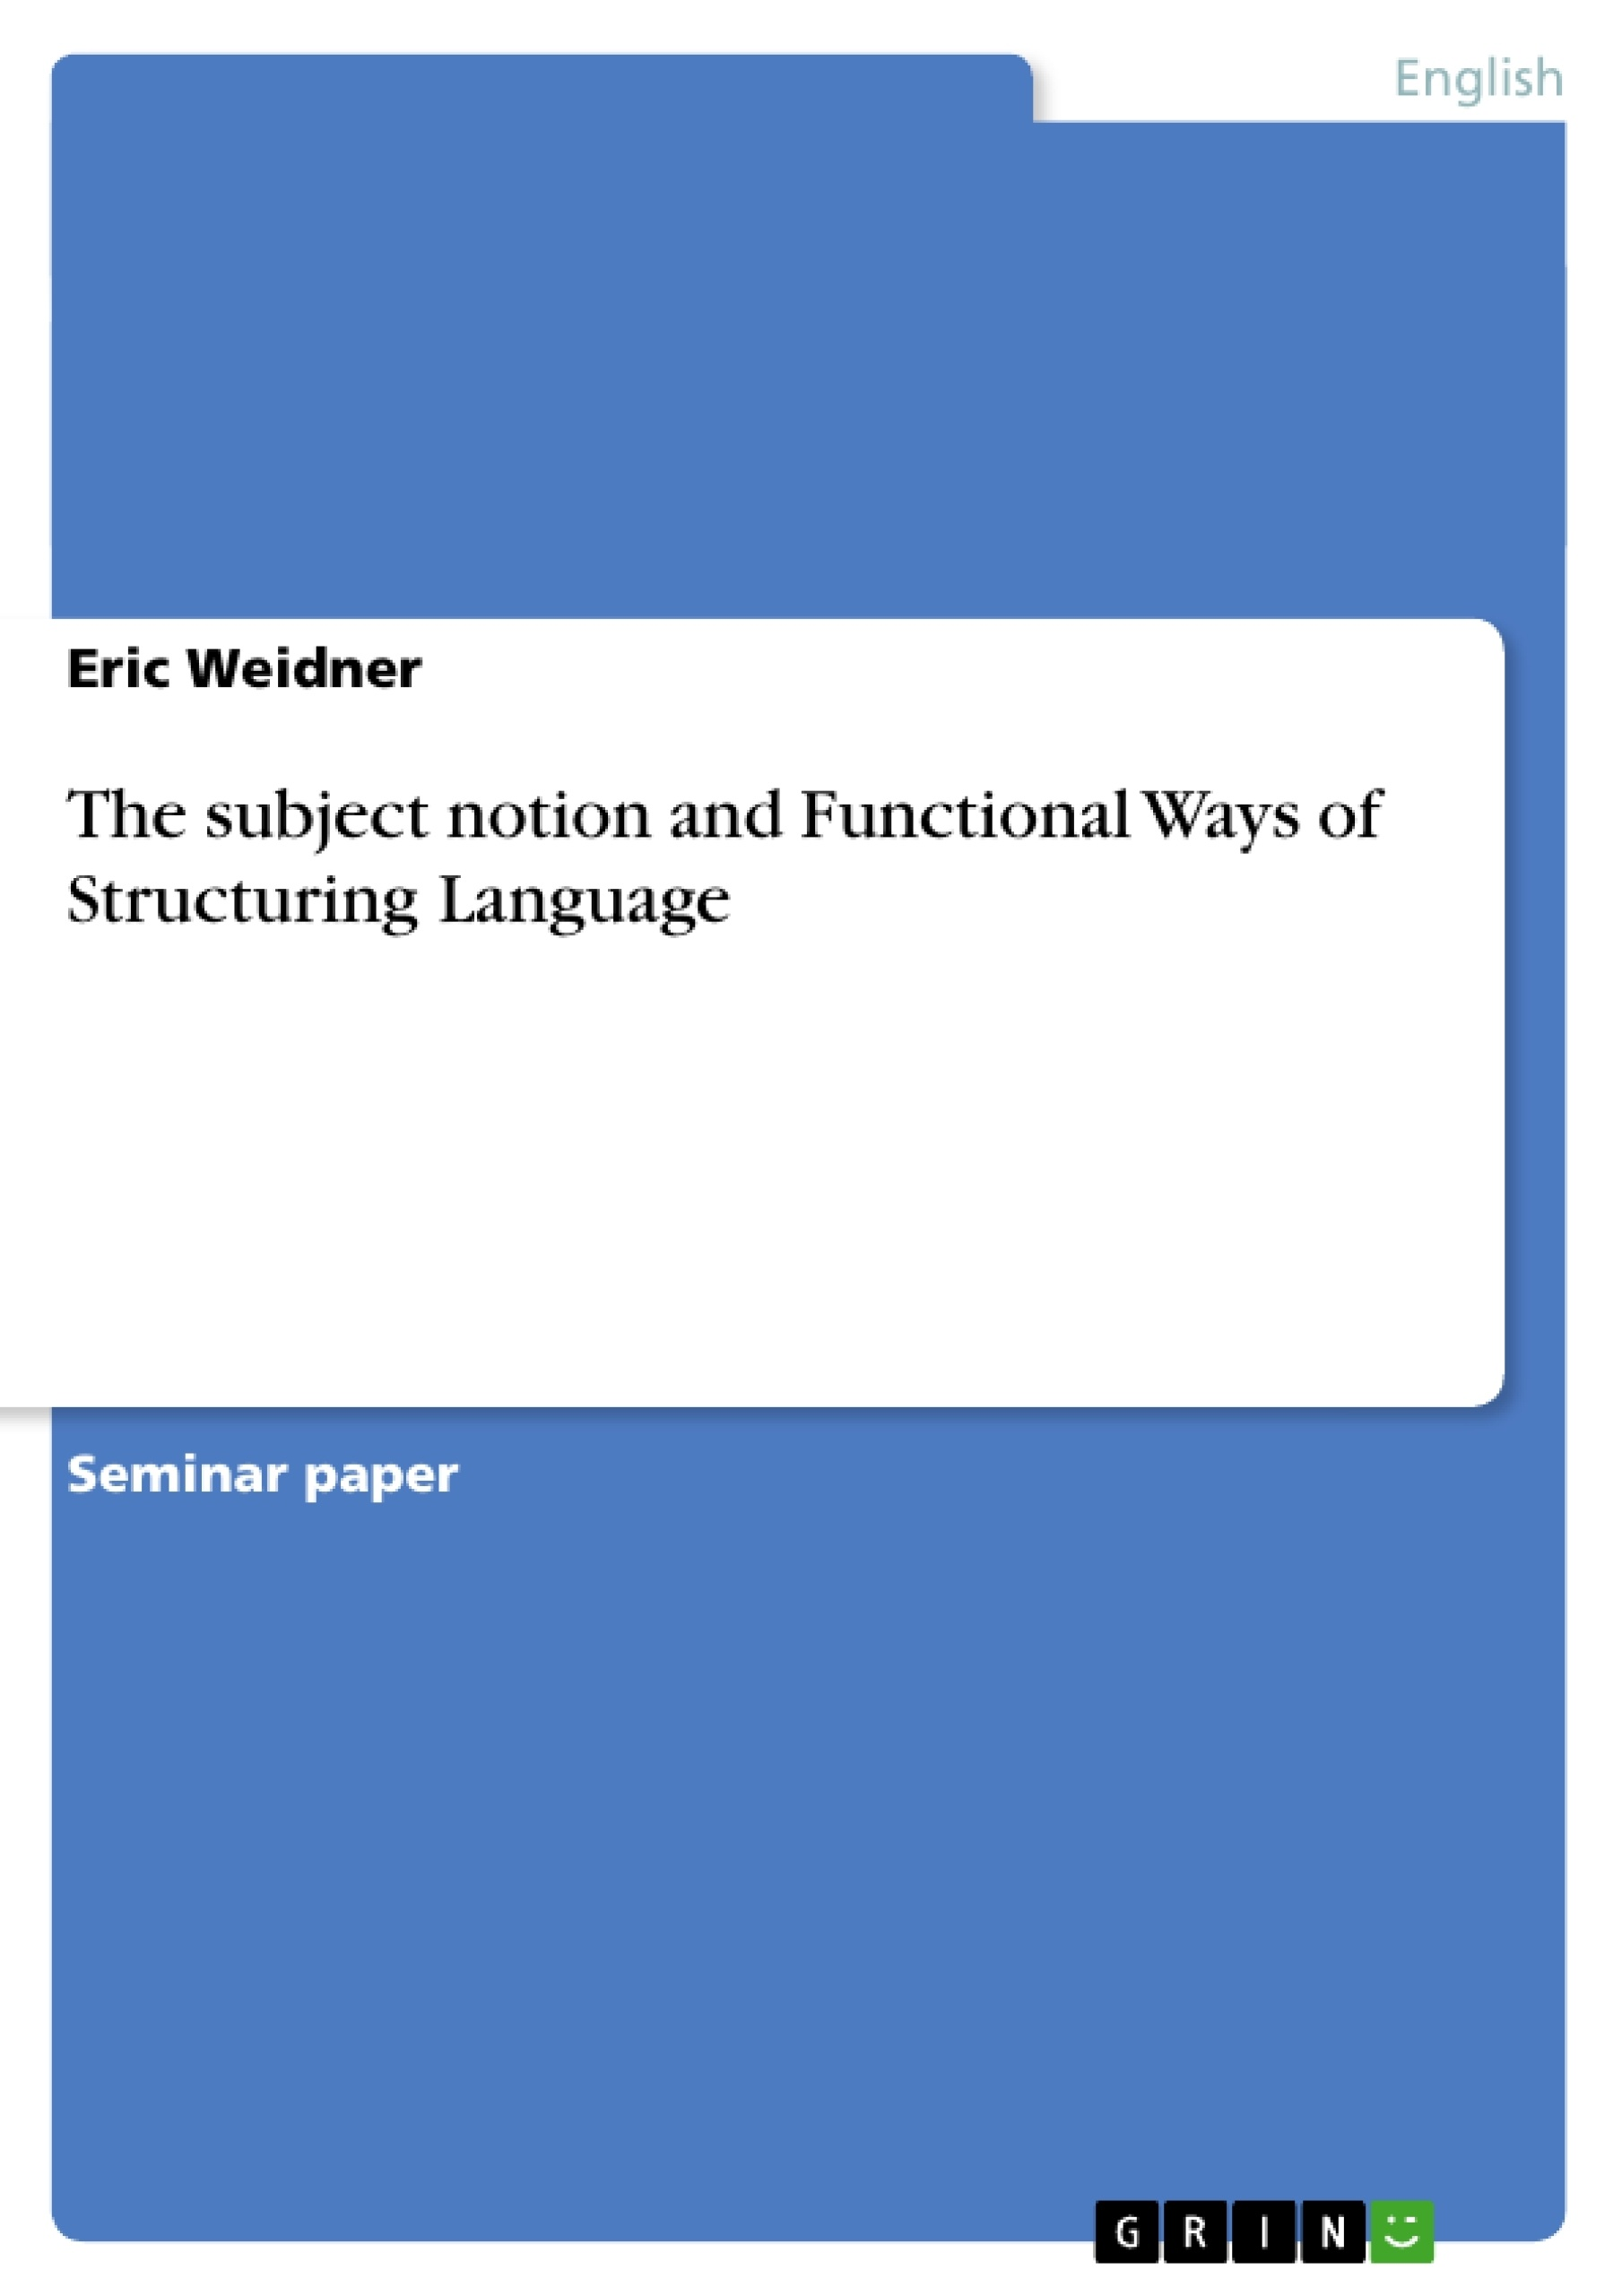 Title: The subject notion and Functional Ways of Structuring Language